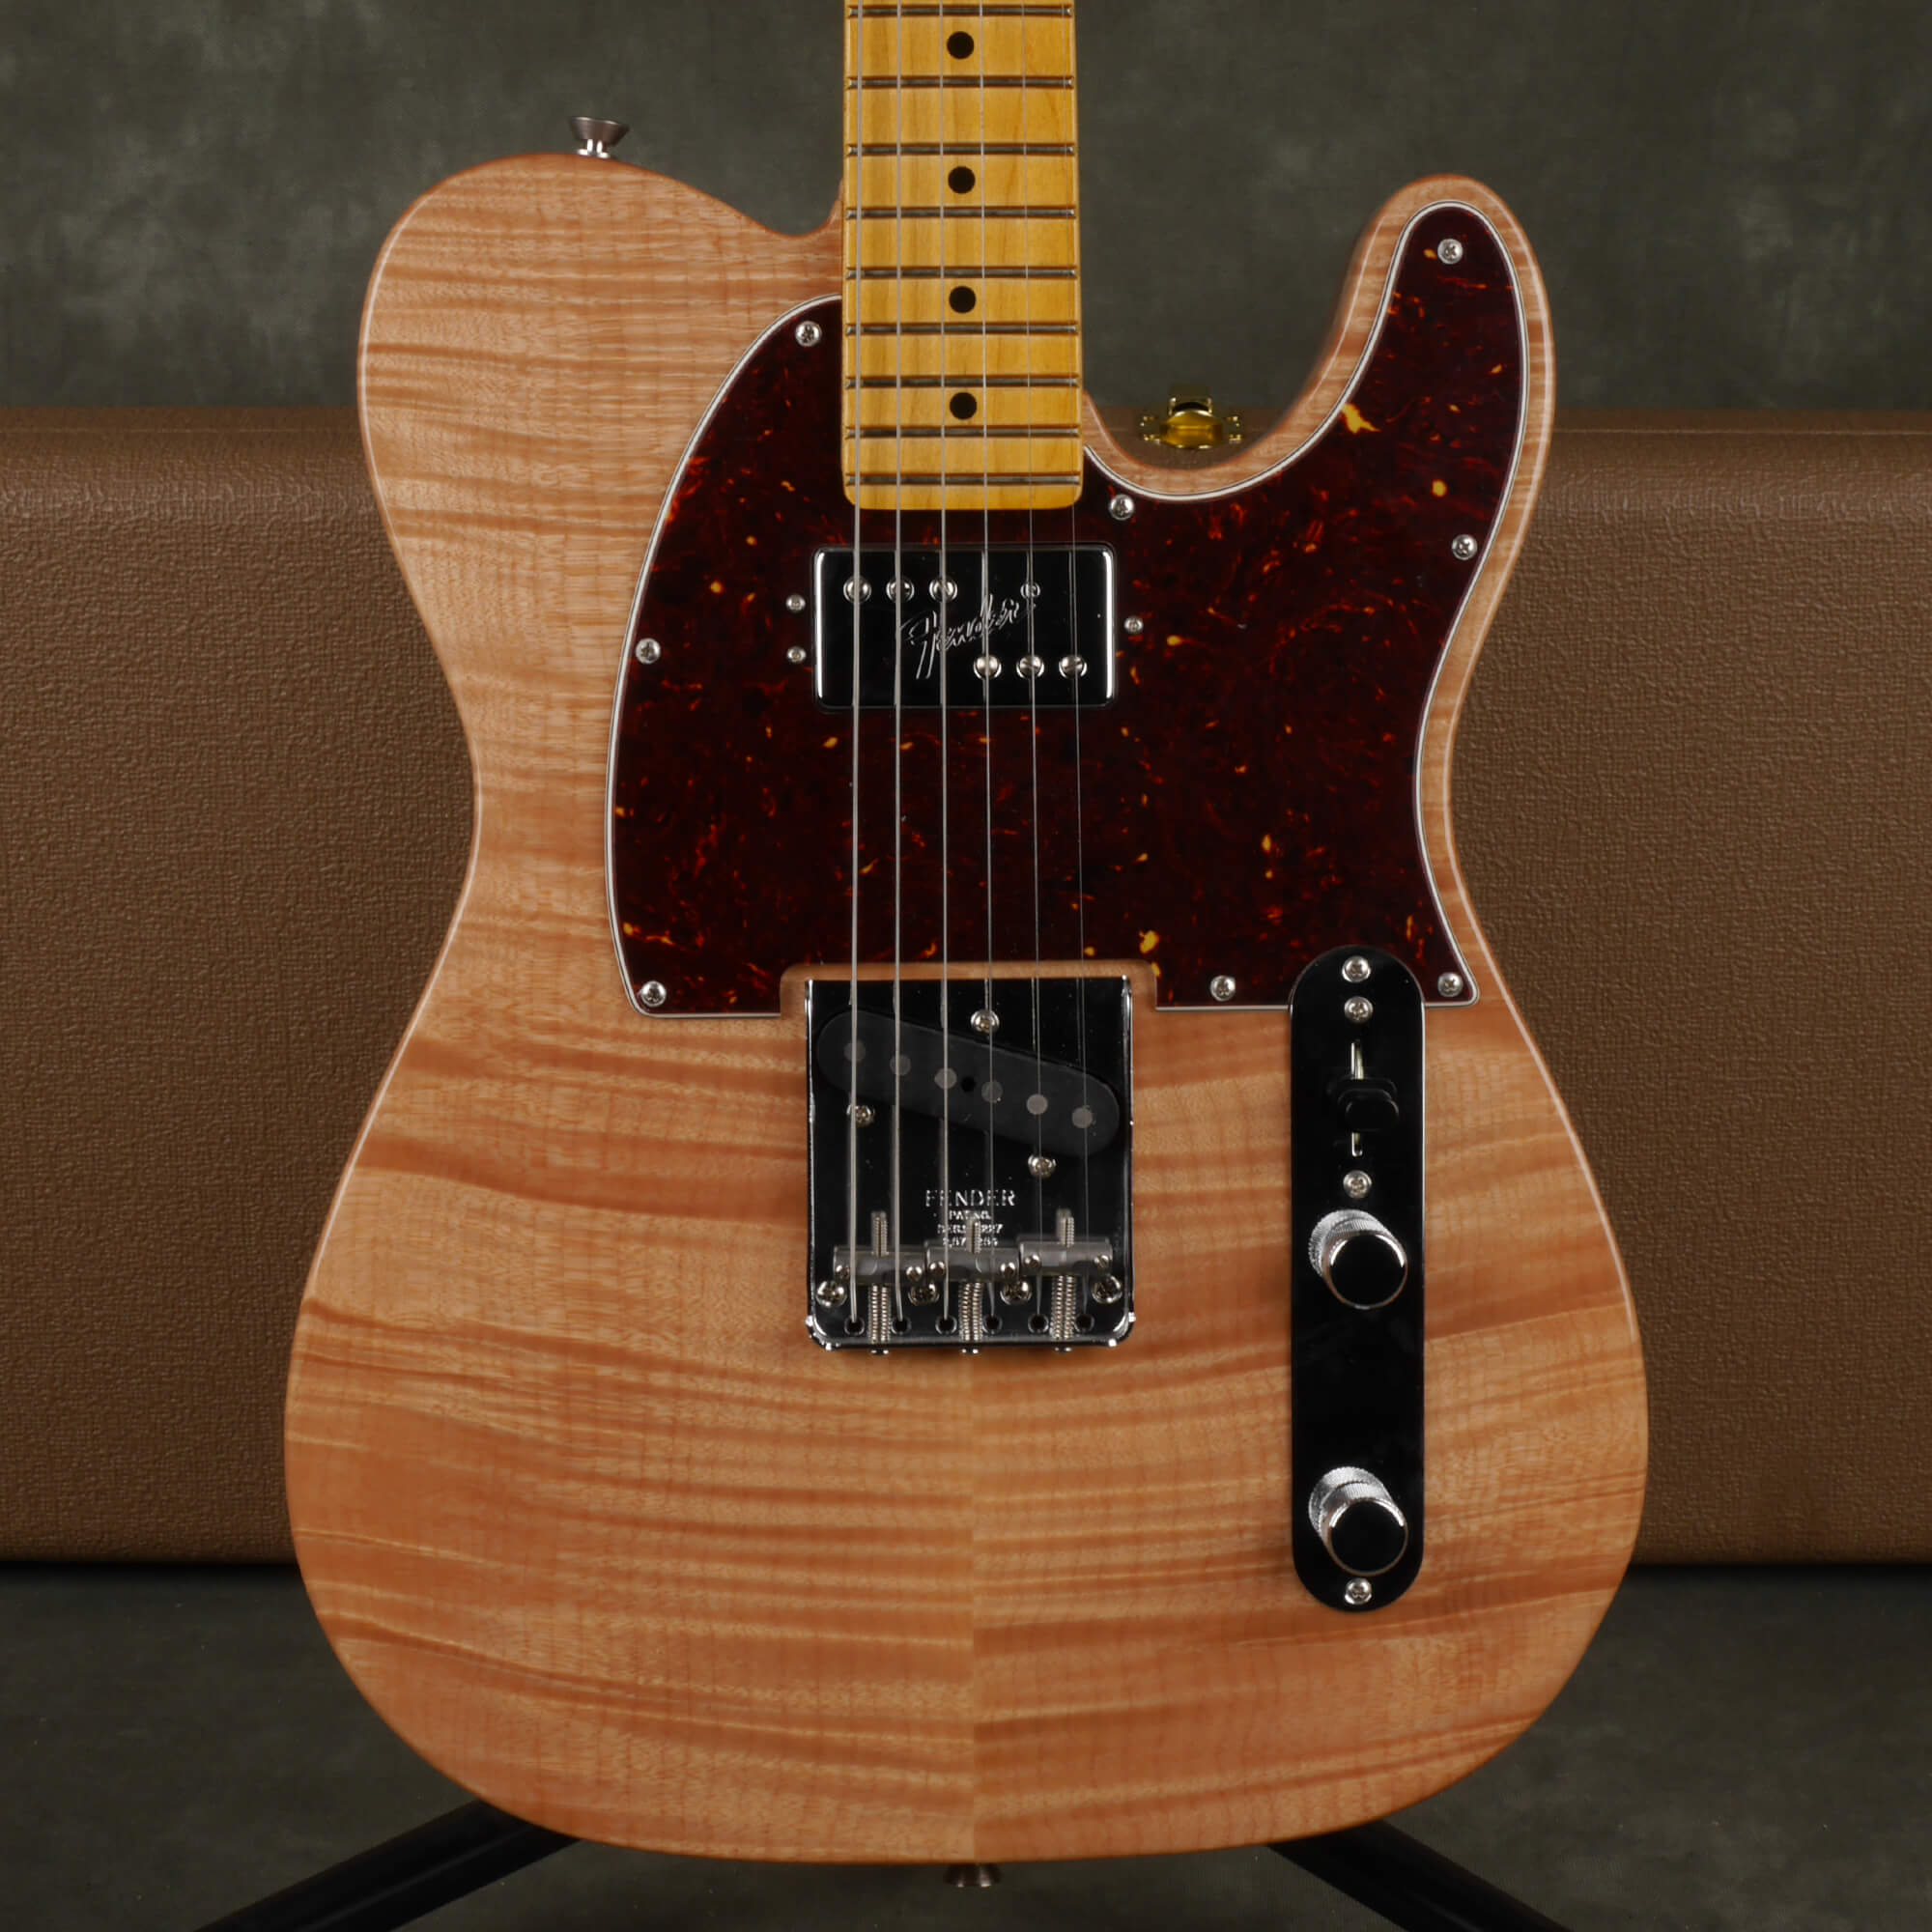 Fender Rarities Chambered Telecaster - Flame Maple Natural w/Case - 2nd Hand